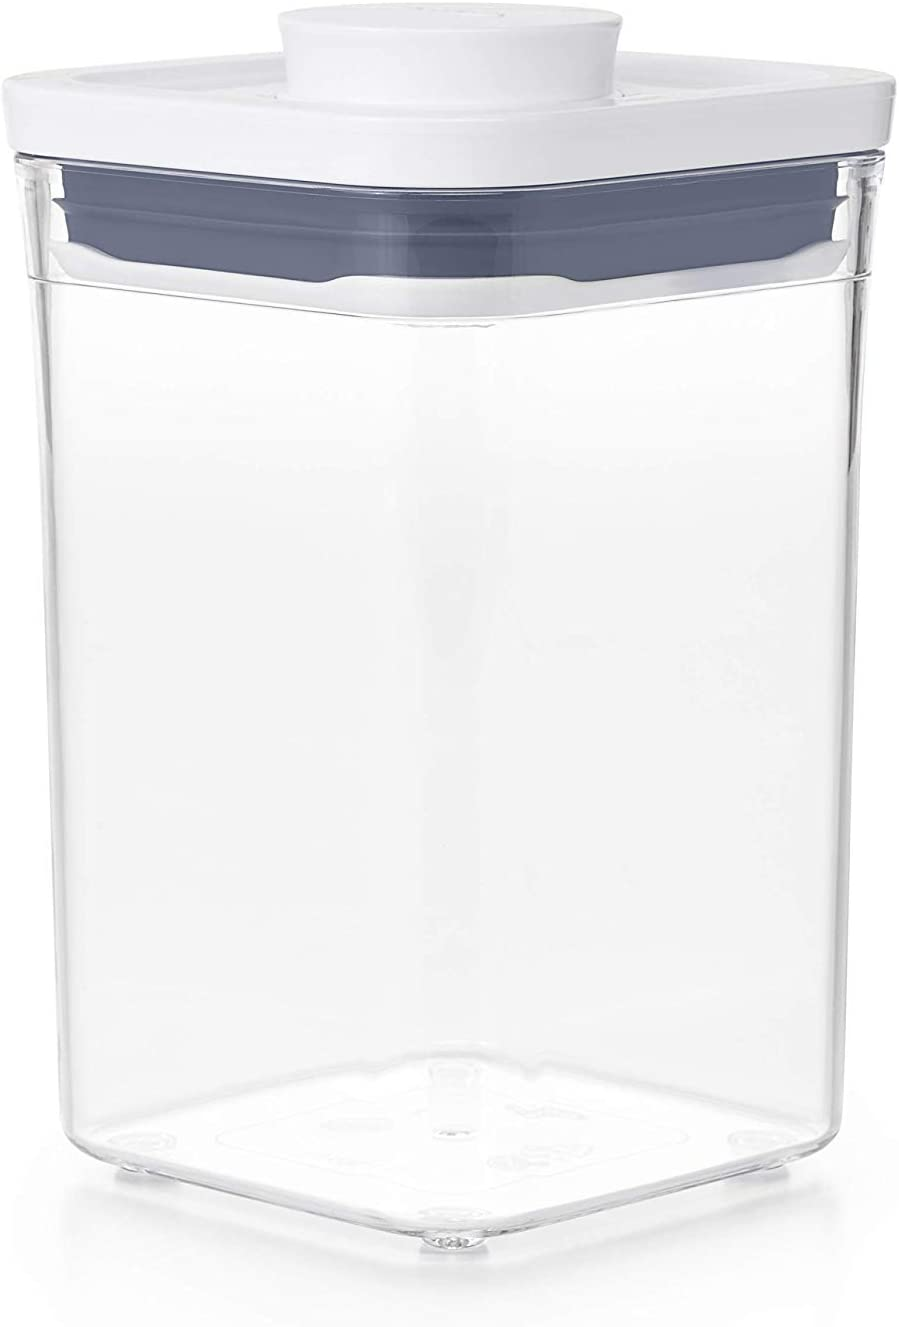 OXO Good Grips POP Container - Airtight Ranking TOP4 Storage Free Shipping New 1.1 Qt Sq Food